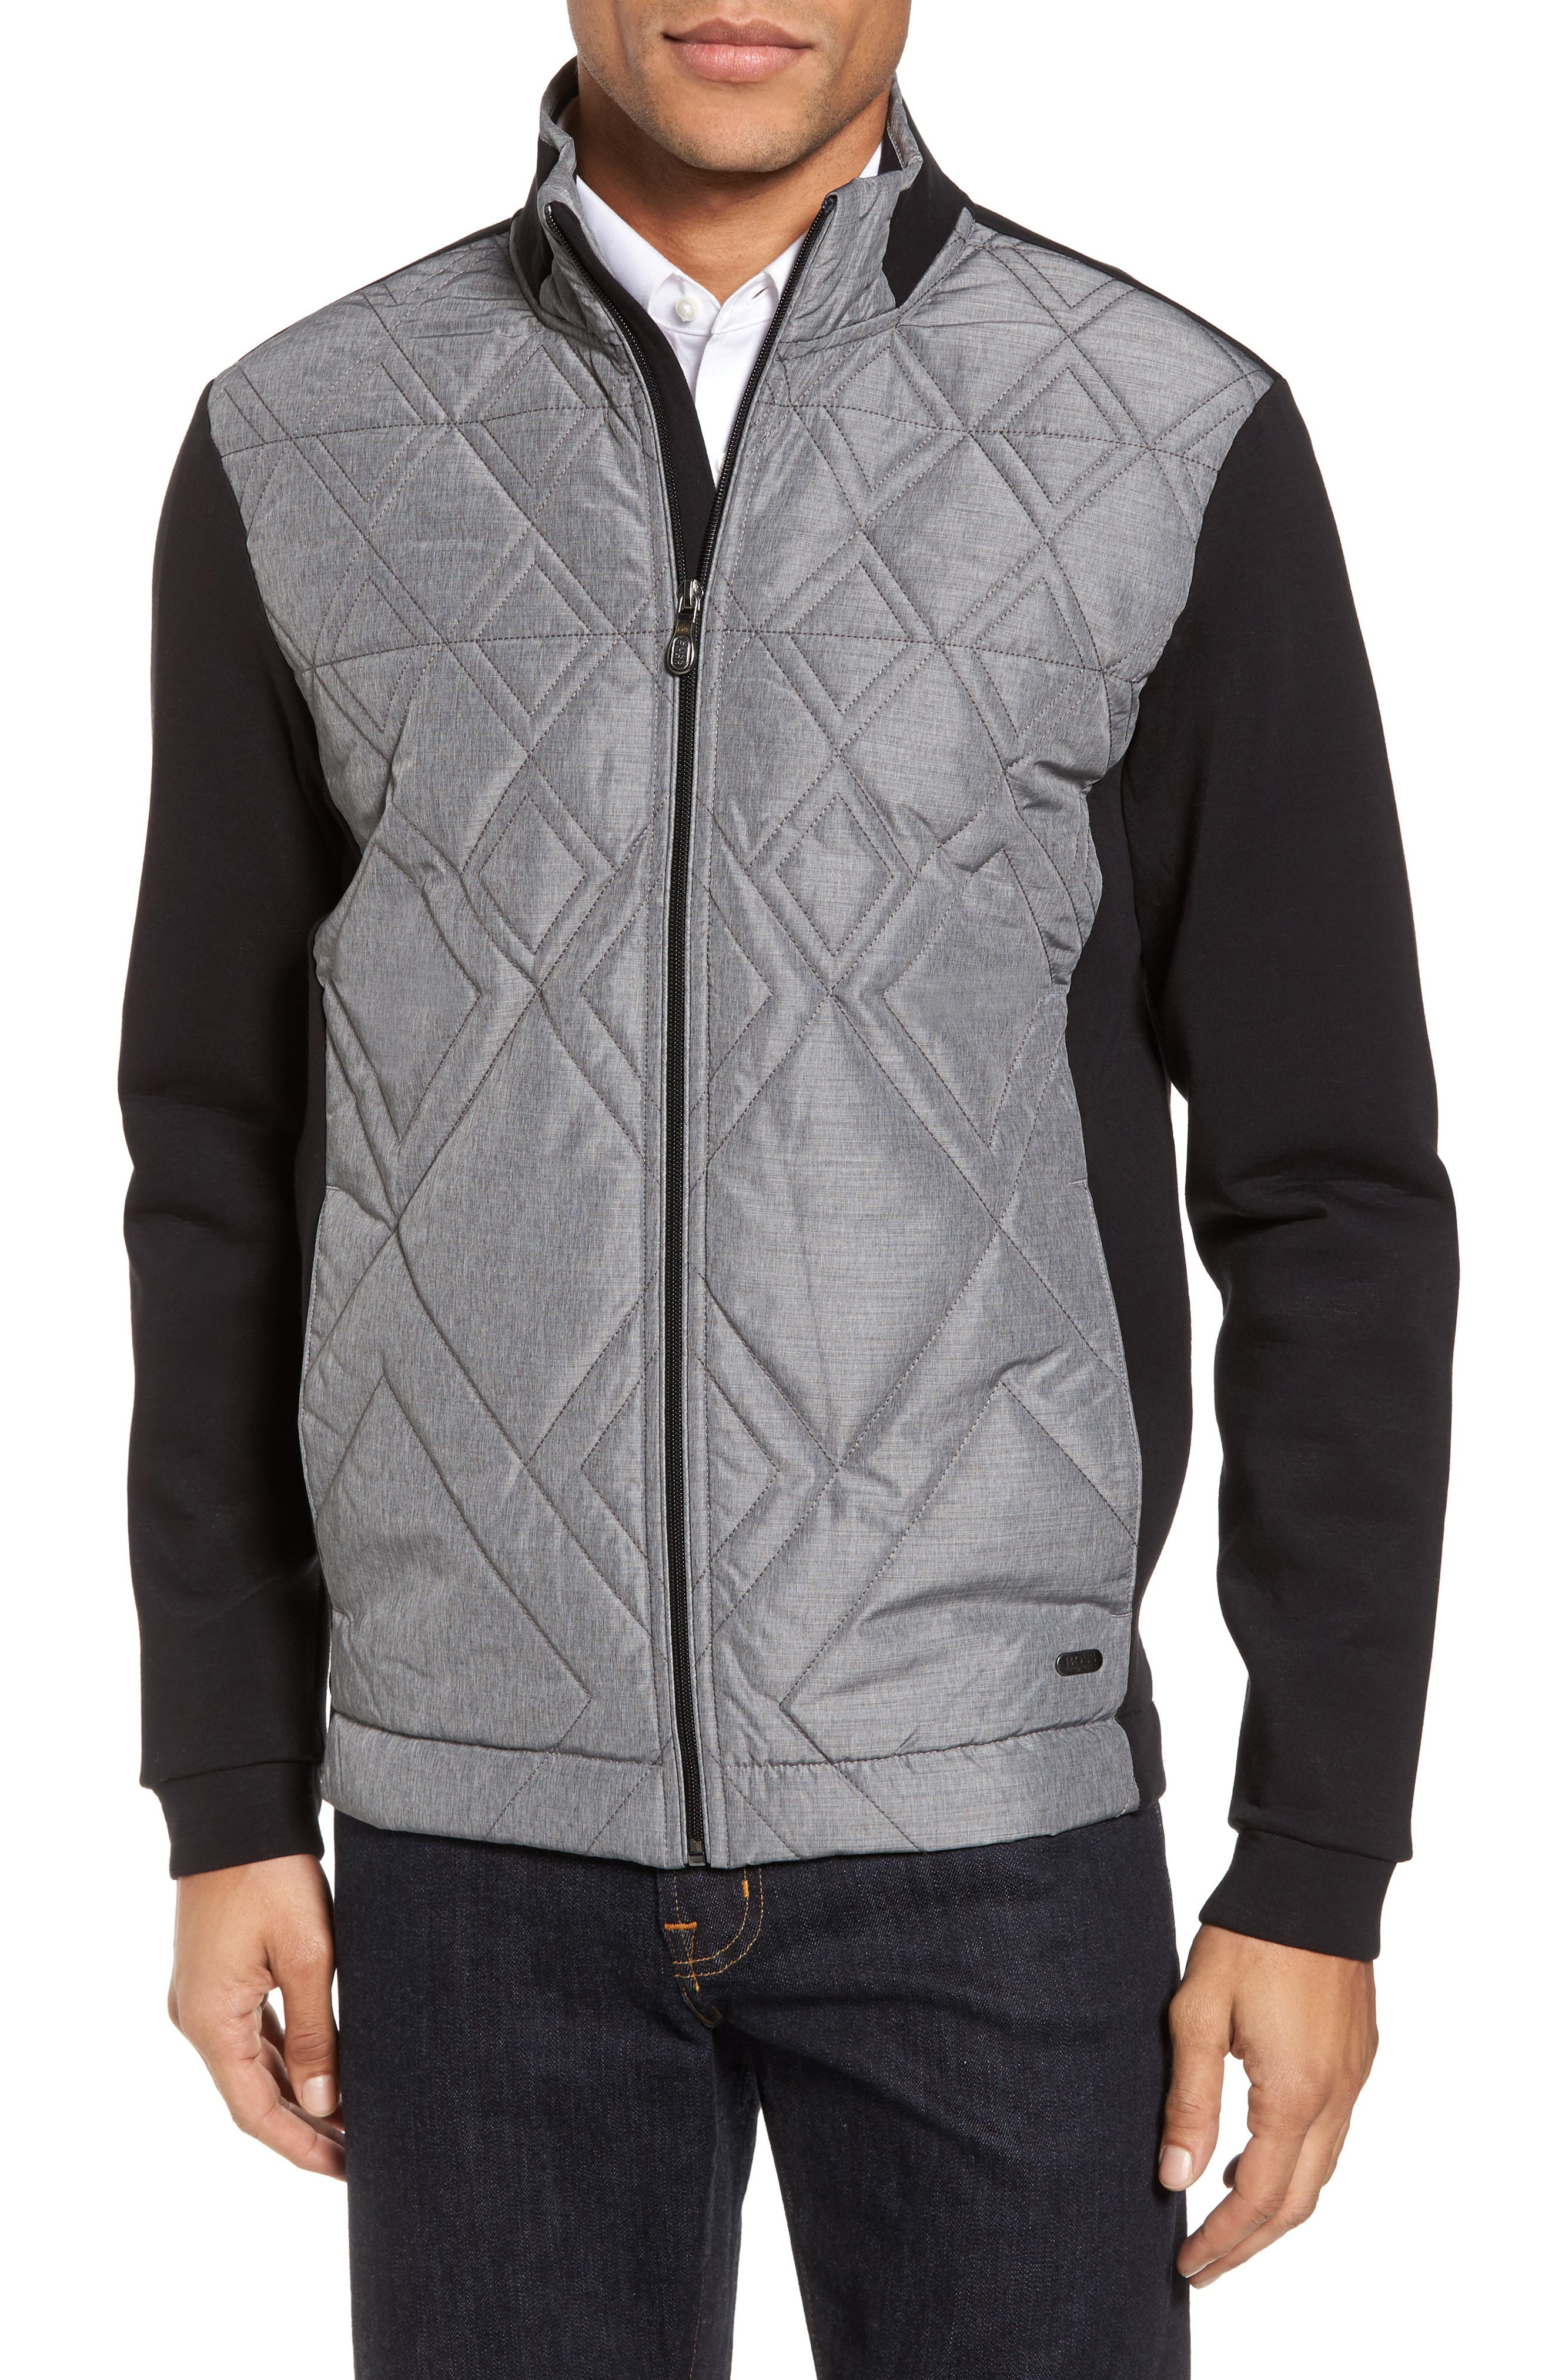 C-Pizzoli Quilted Jacket,                             Main thumbnail 1, color,                             Black